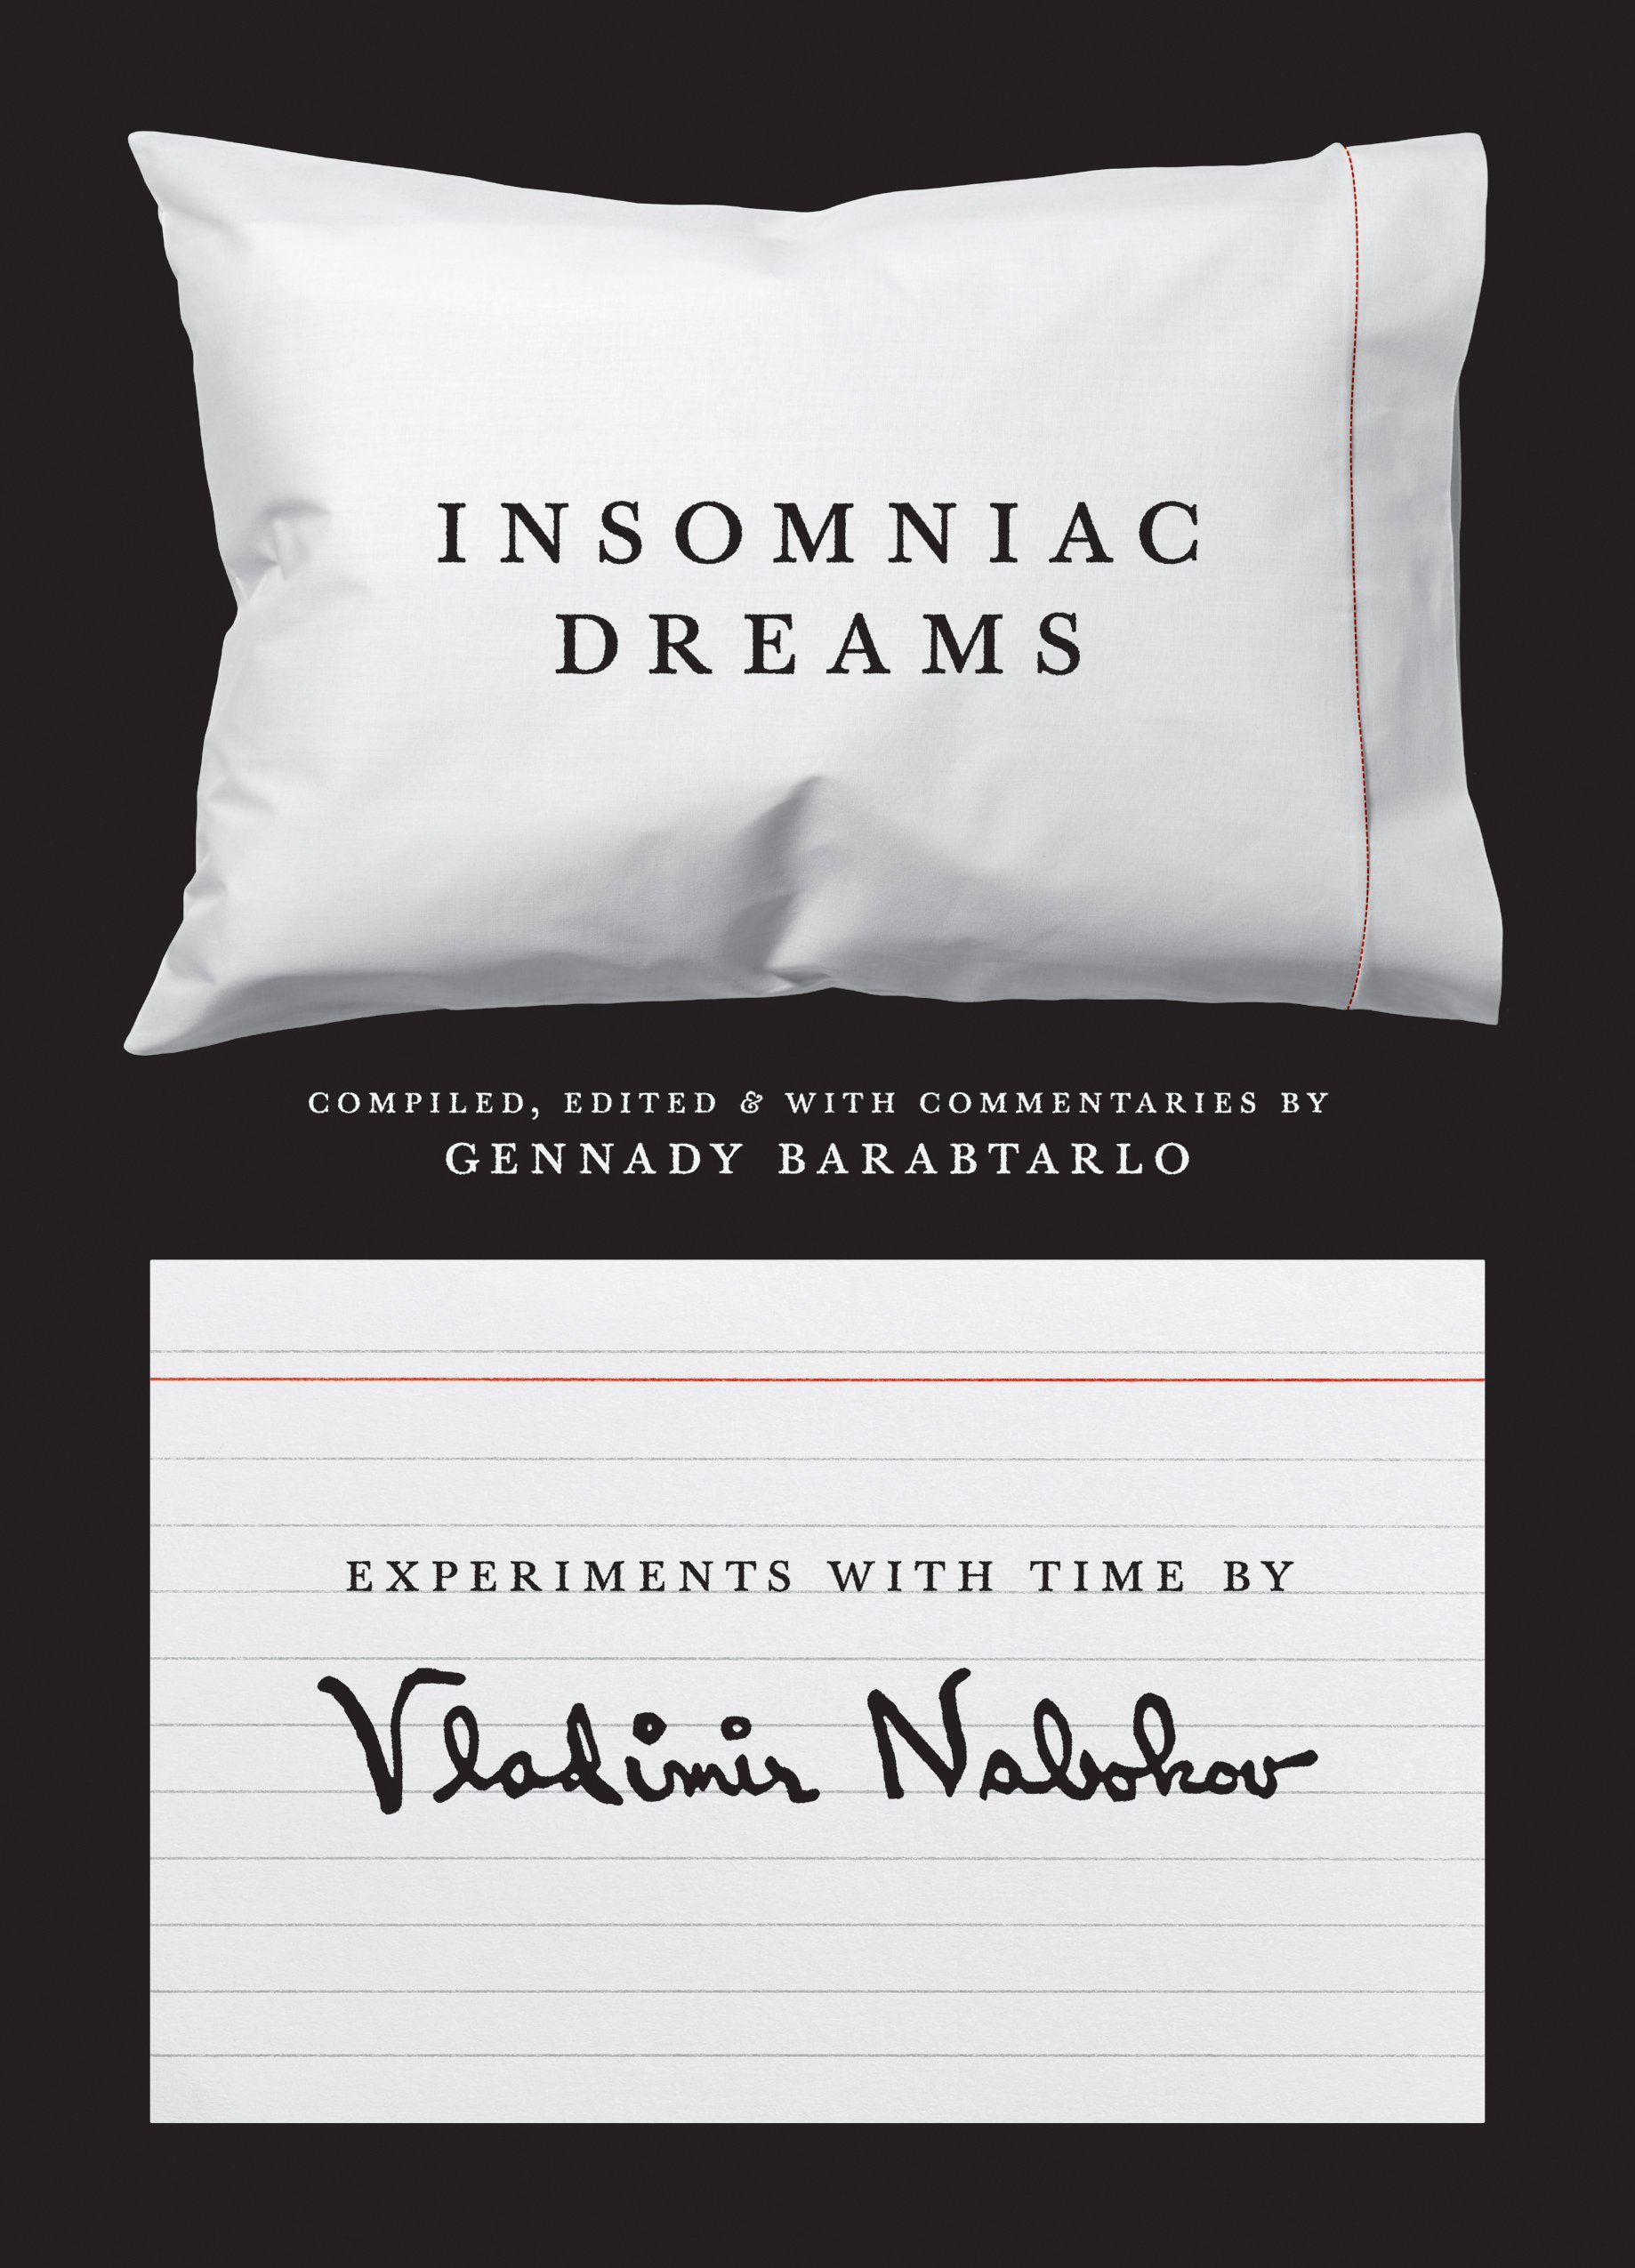 Insomniac Dreams  Experiments With Time By Vladimir Nabokov